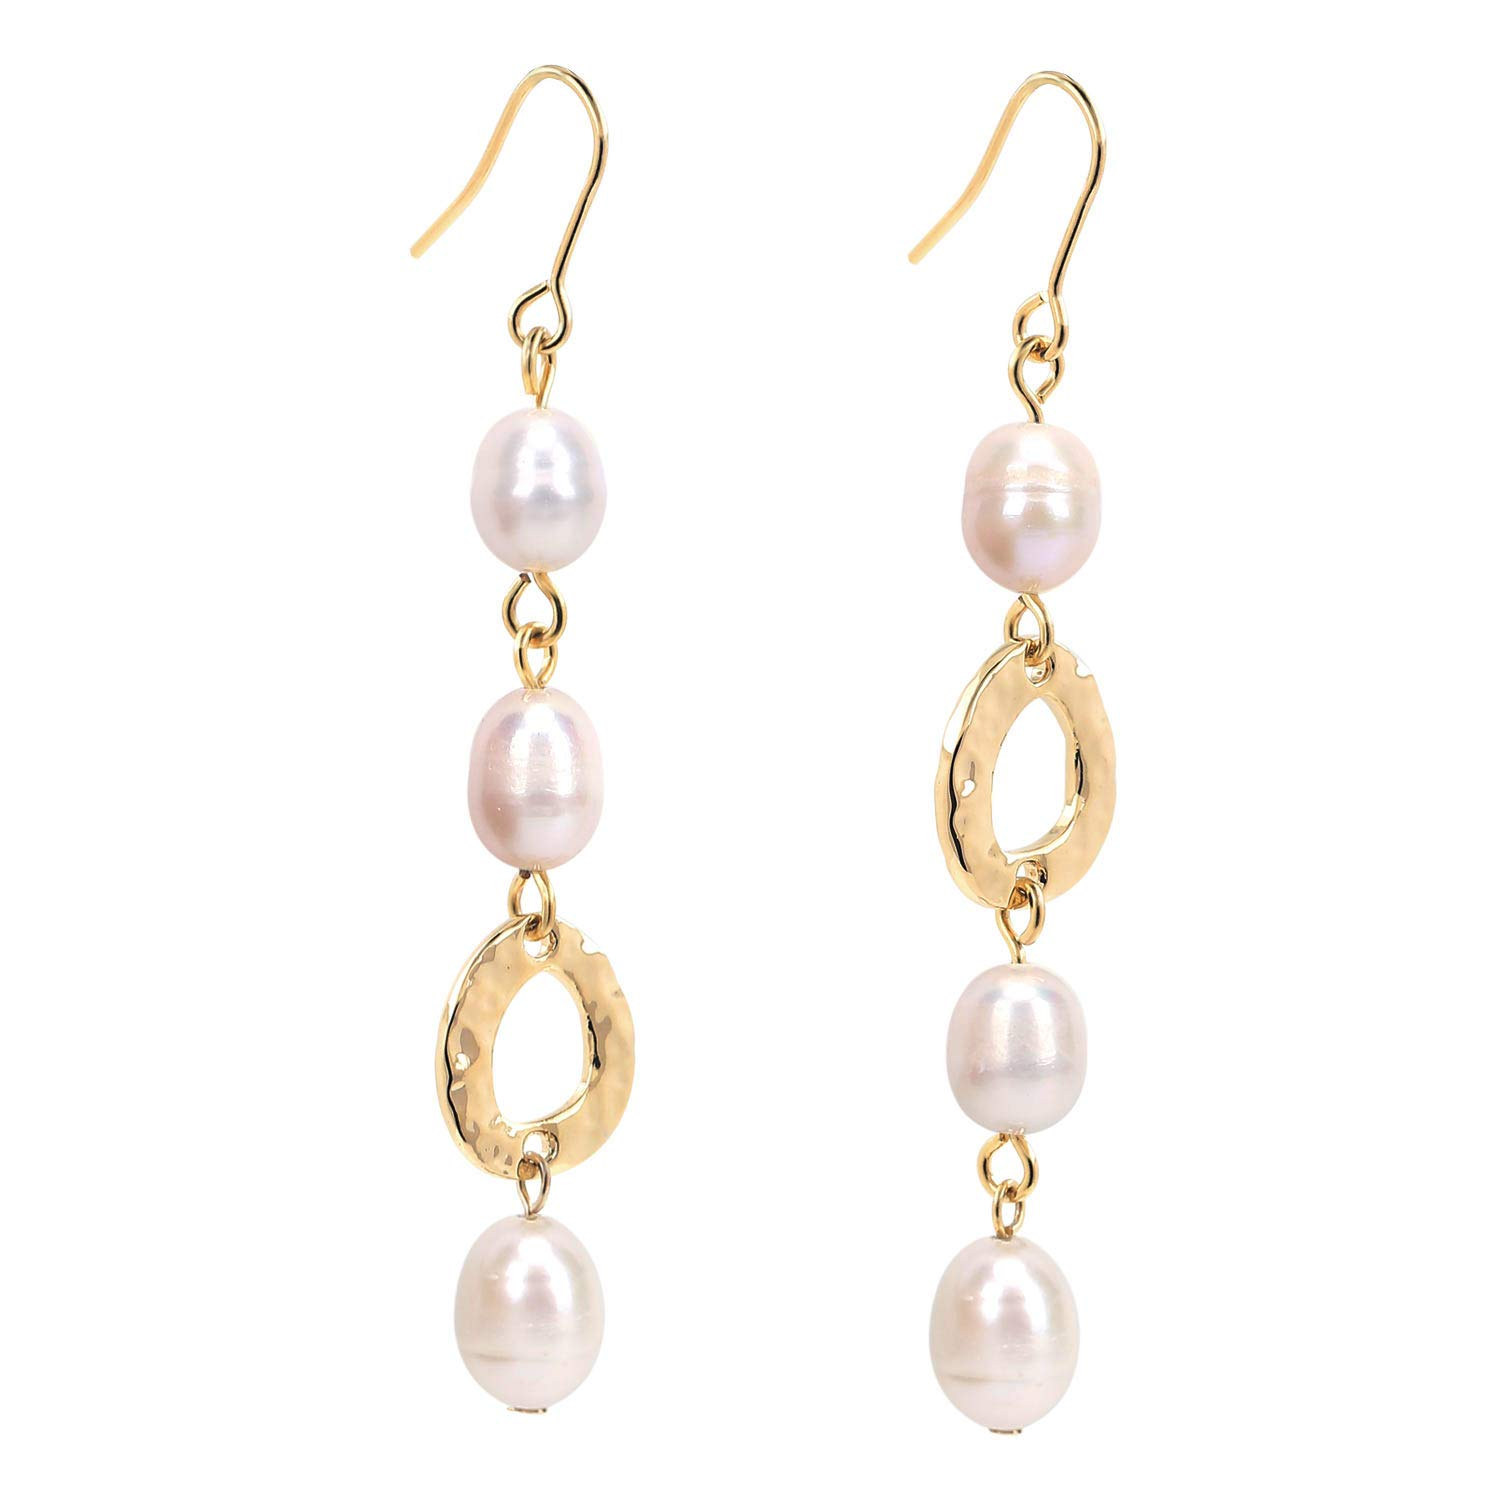 COZLANE Freshwater Pearl Drop Earrings Long Dangle Fish Hook with 14K Gold Plated Hammered Circle, Wedding Jewelry Gifts for Brides Bridesmaids